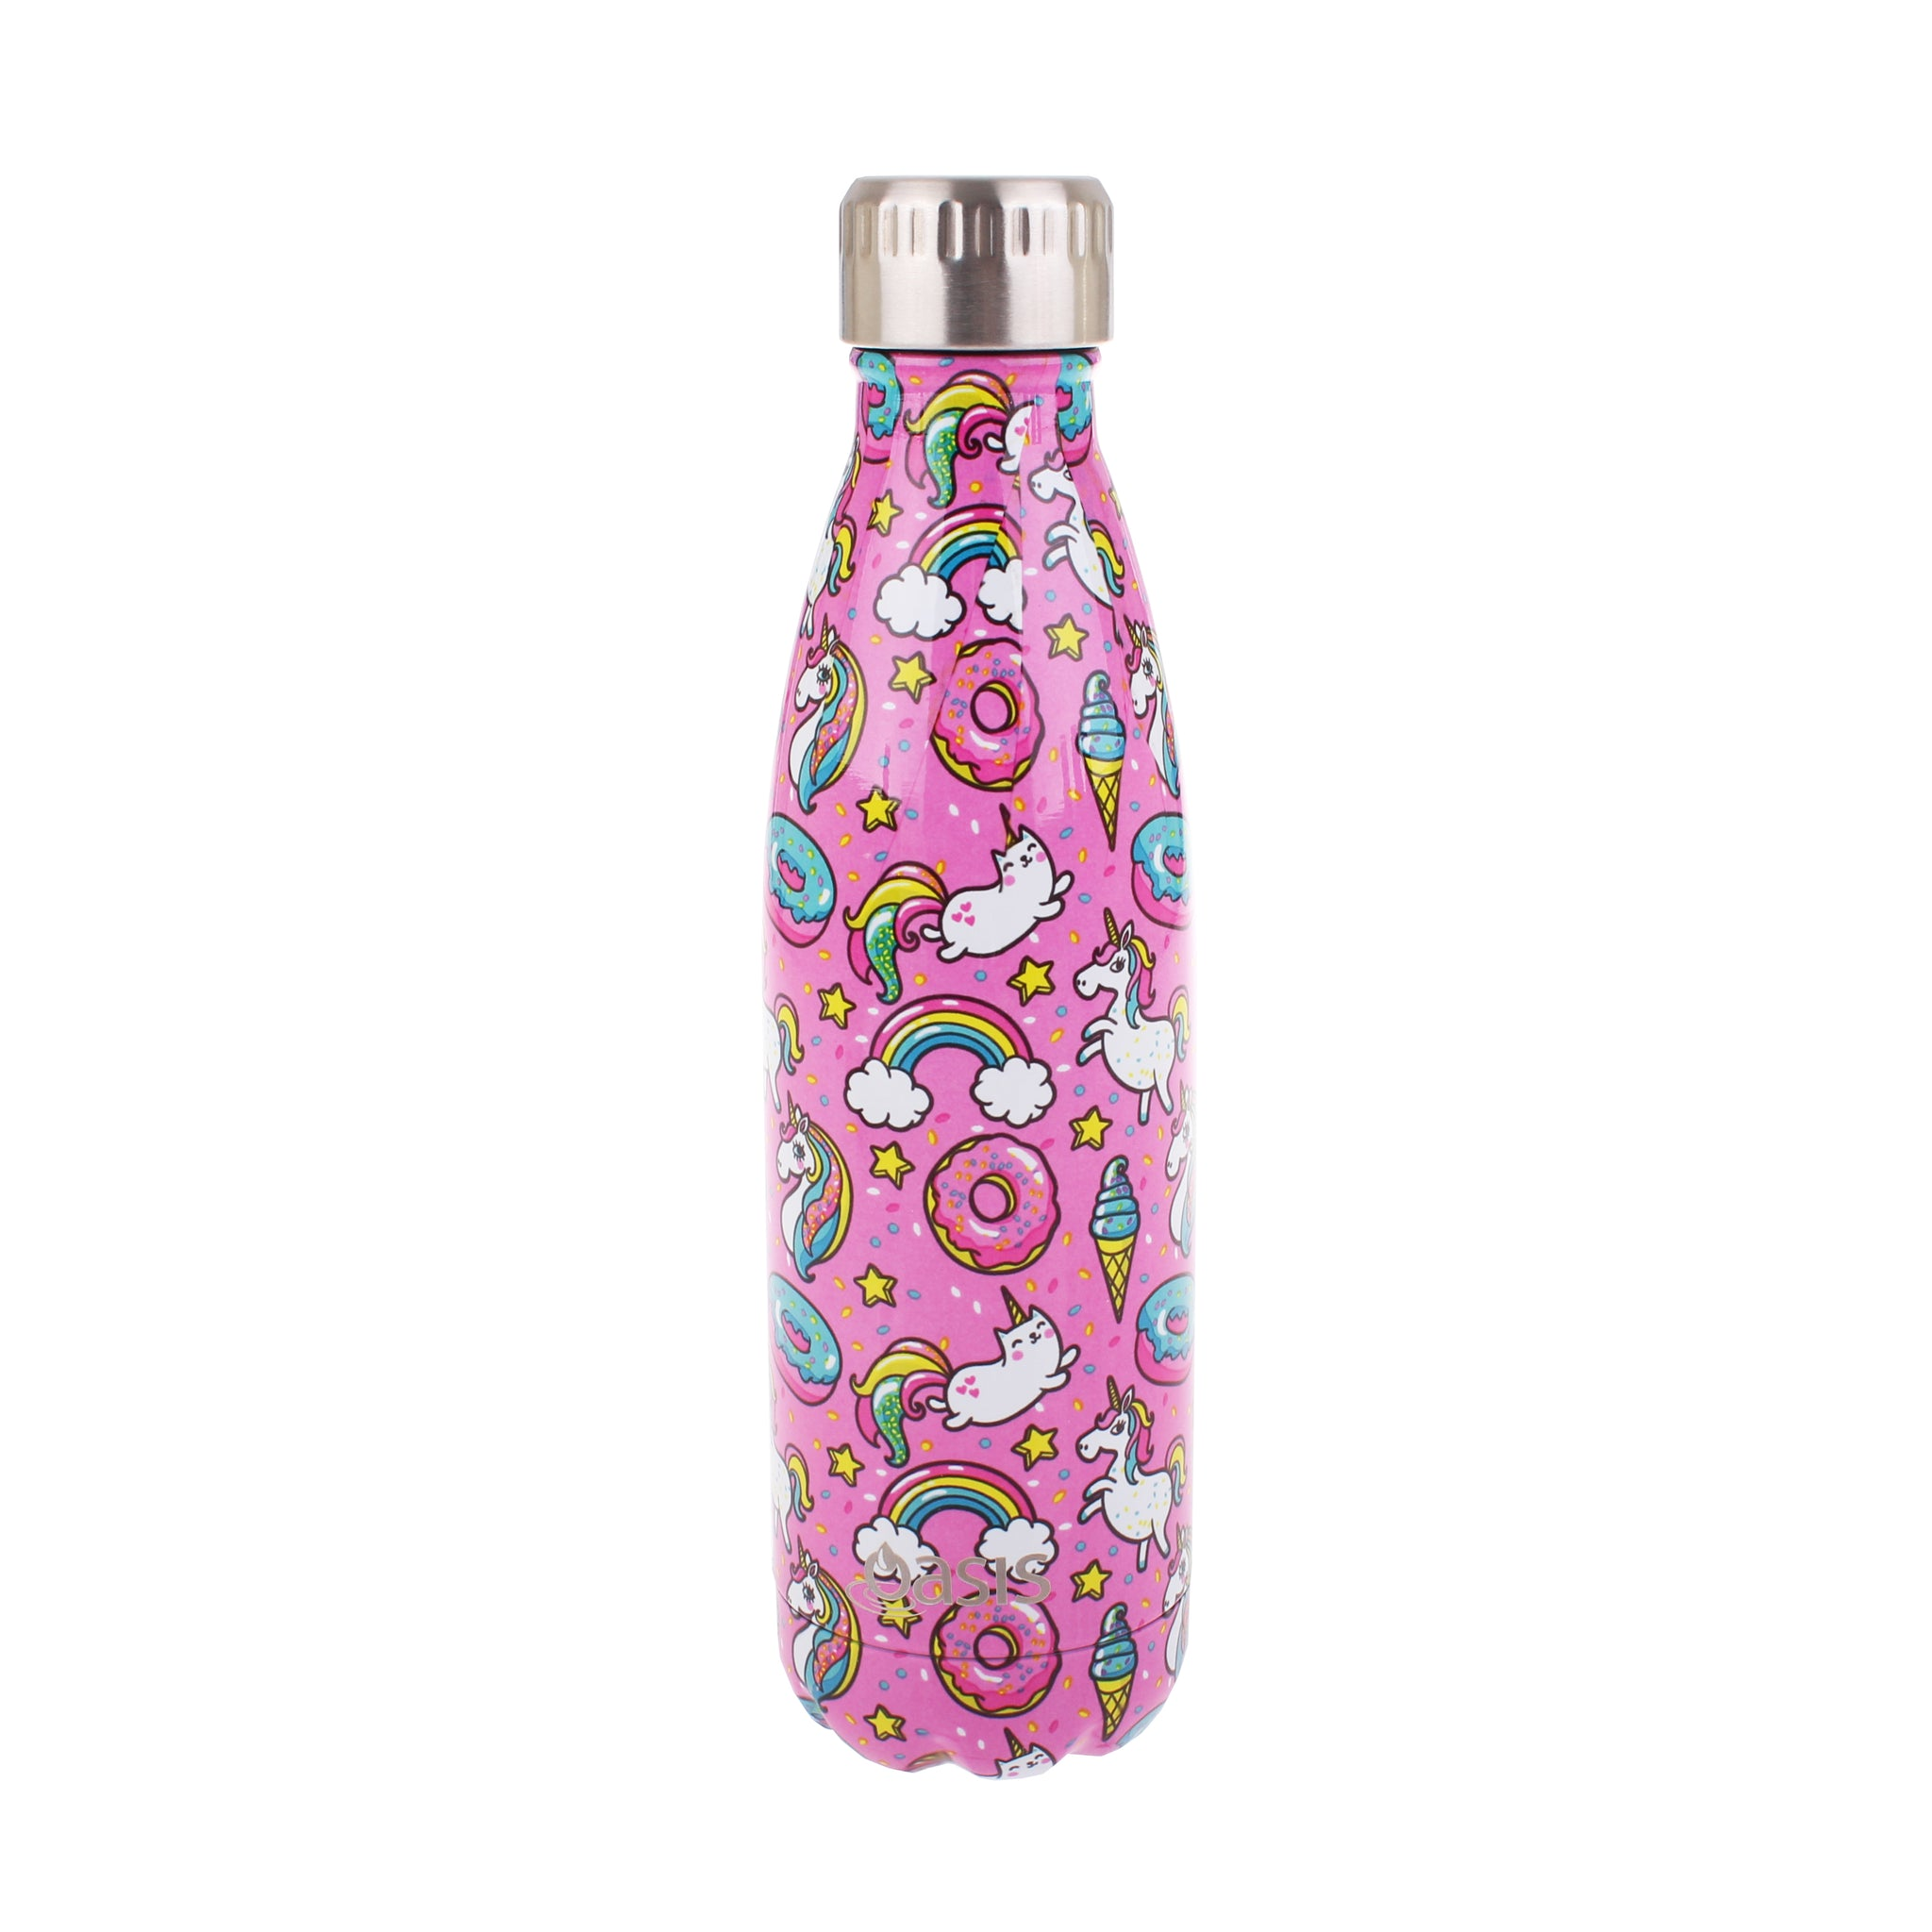 Oasis Stainless Steel Insulated Bottle - Unicorn 500ml